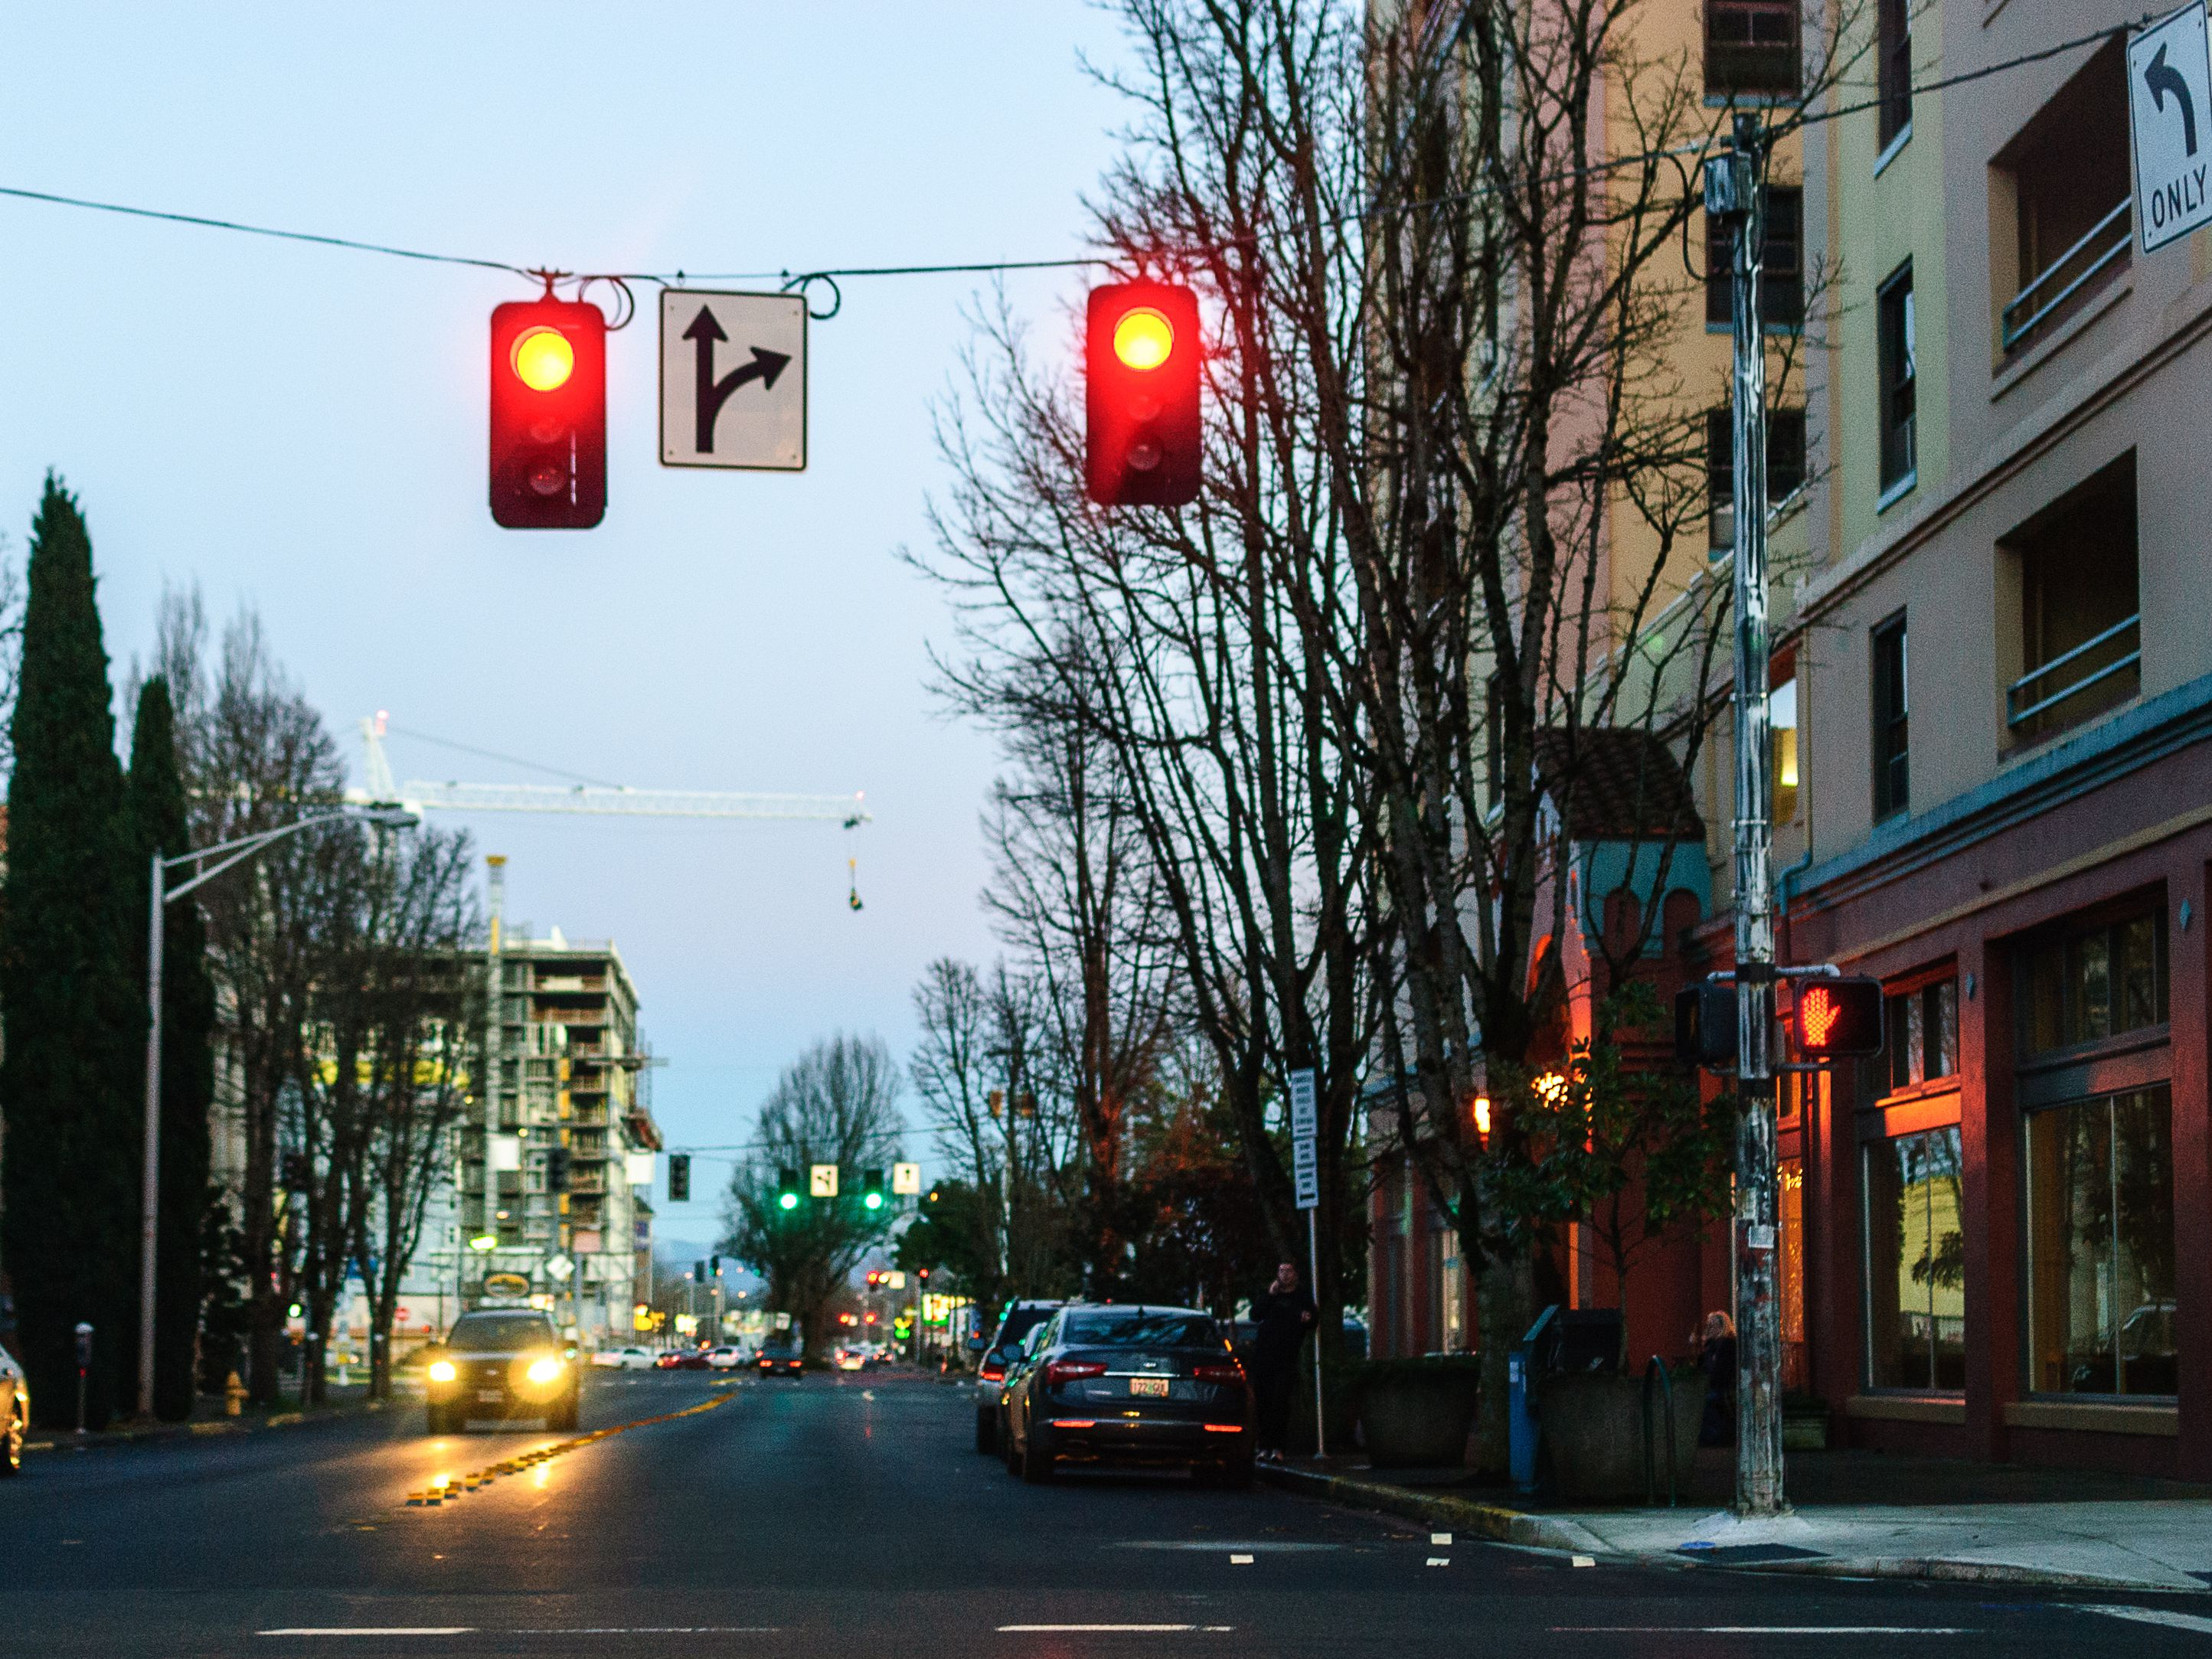 LGBT Dining and Cafe Culture in Eugene, Oregon